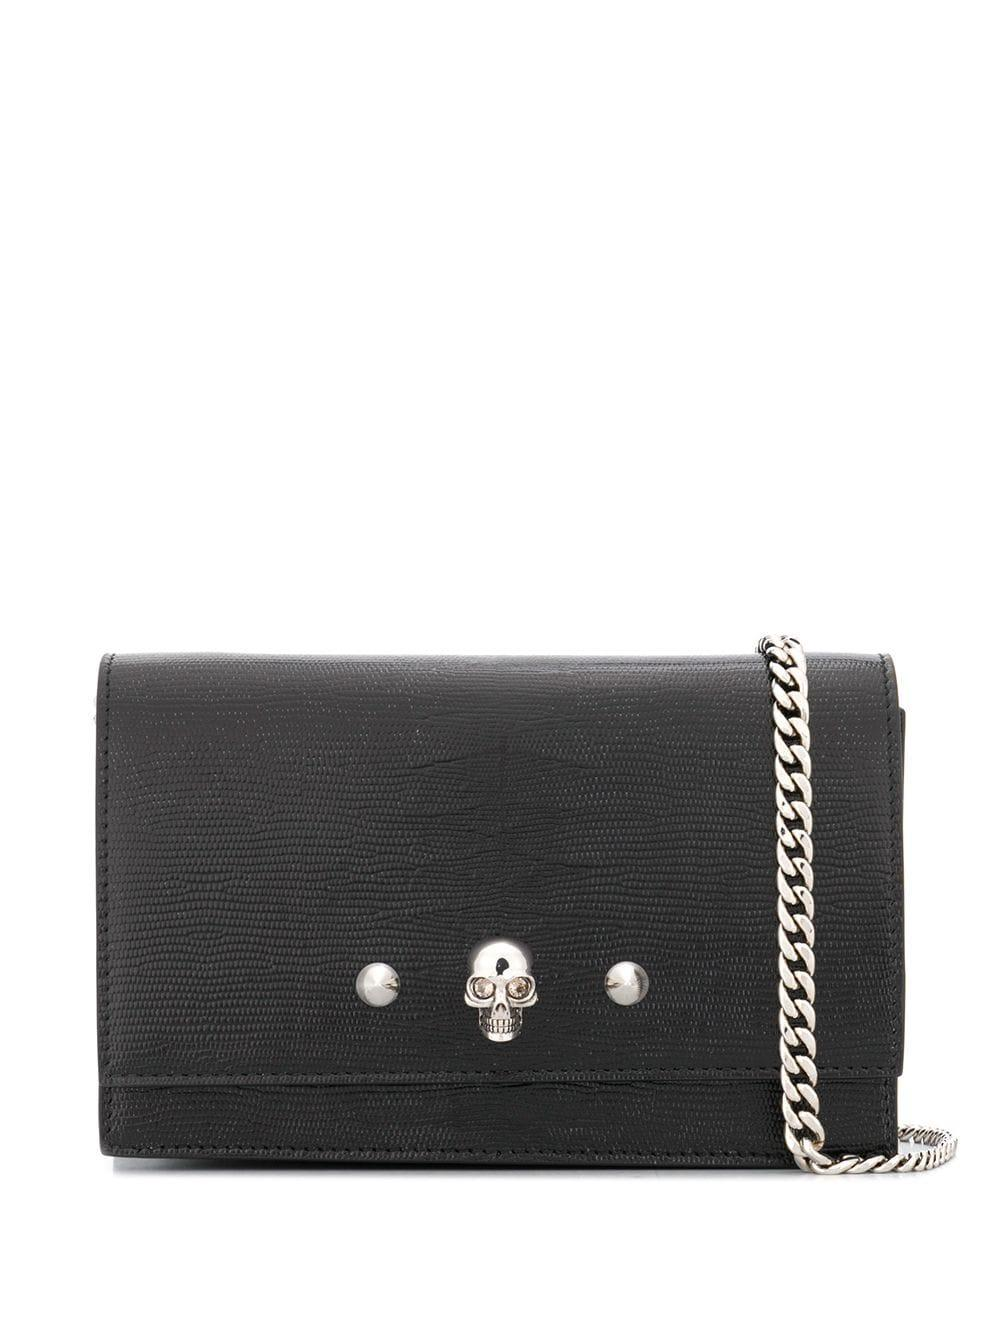 Leather Skill/Studs Small Bag With Chain Item # 6103311RE0Y